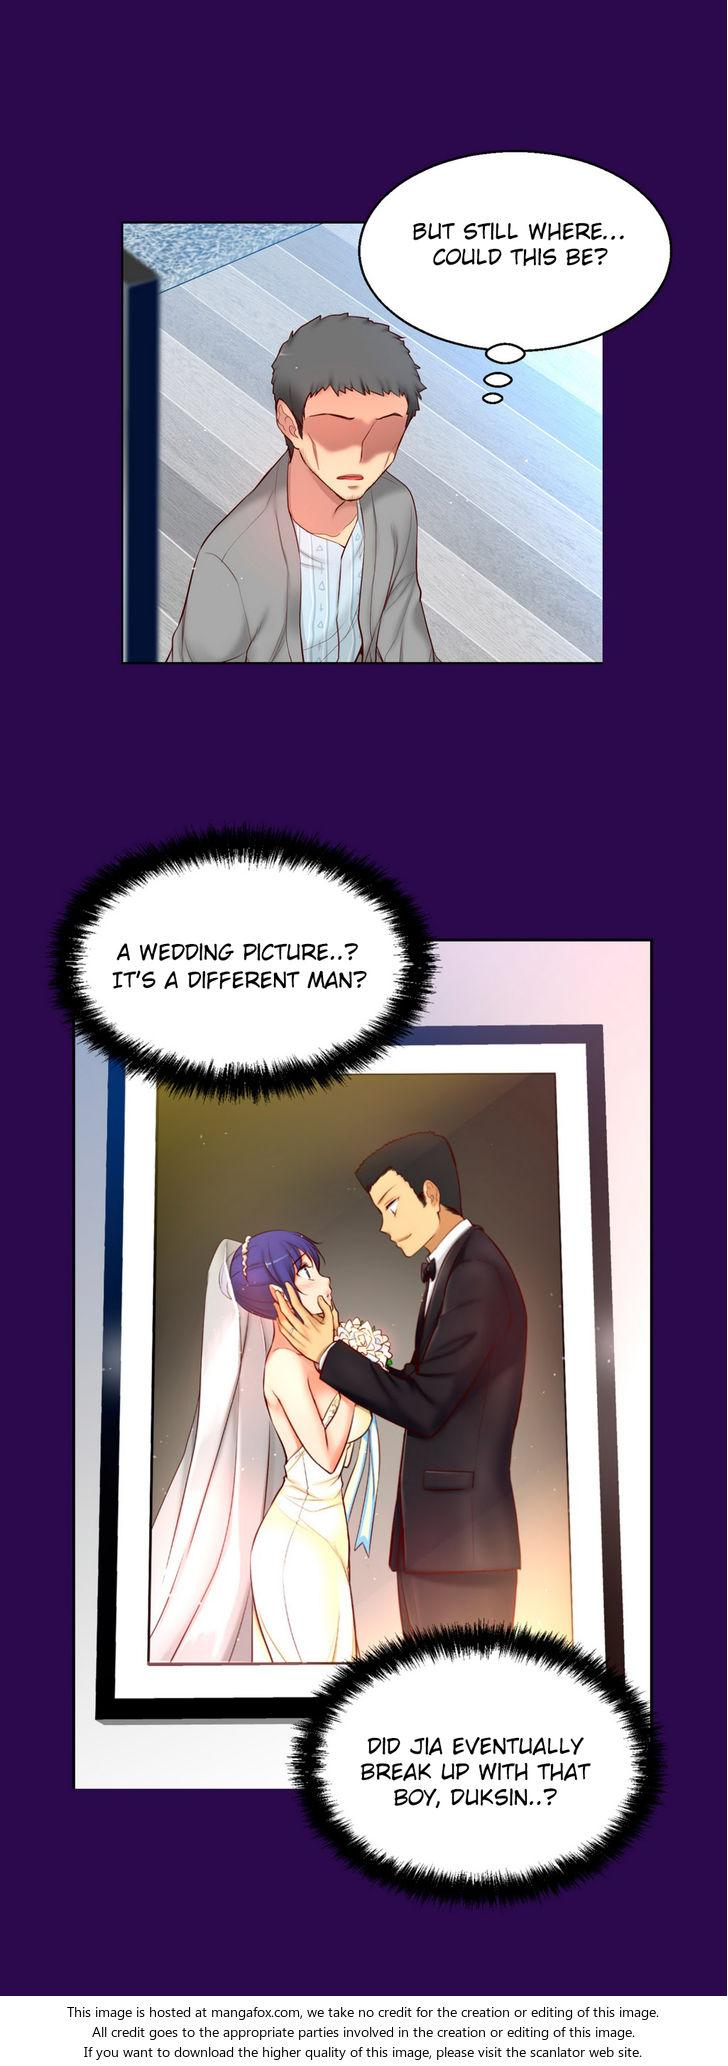 [Donggul Gom] She is Young (English) Part 1/2 1252